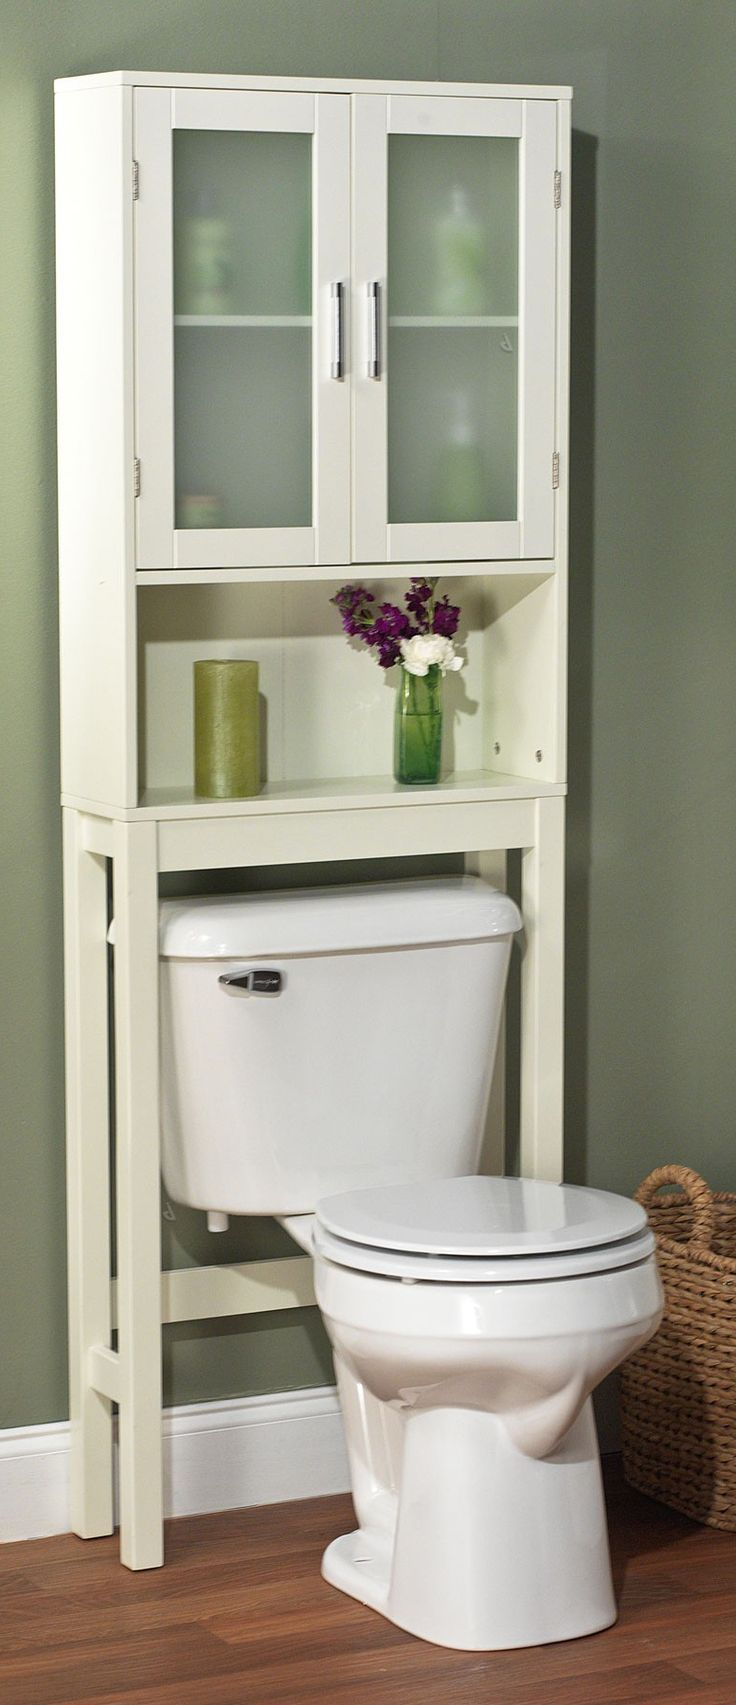 Small bathroom closet home design for Bathroom storage ideas